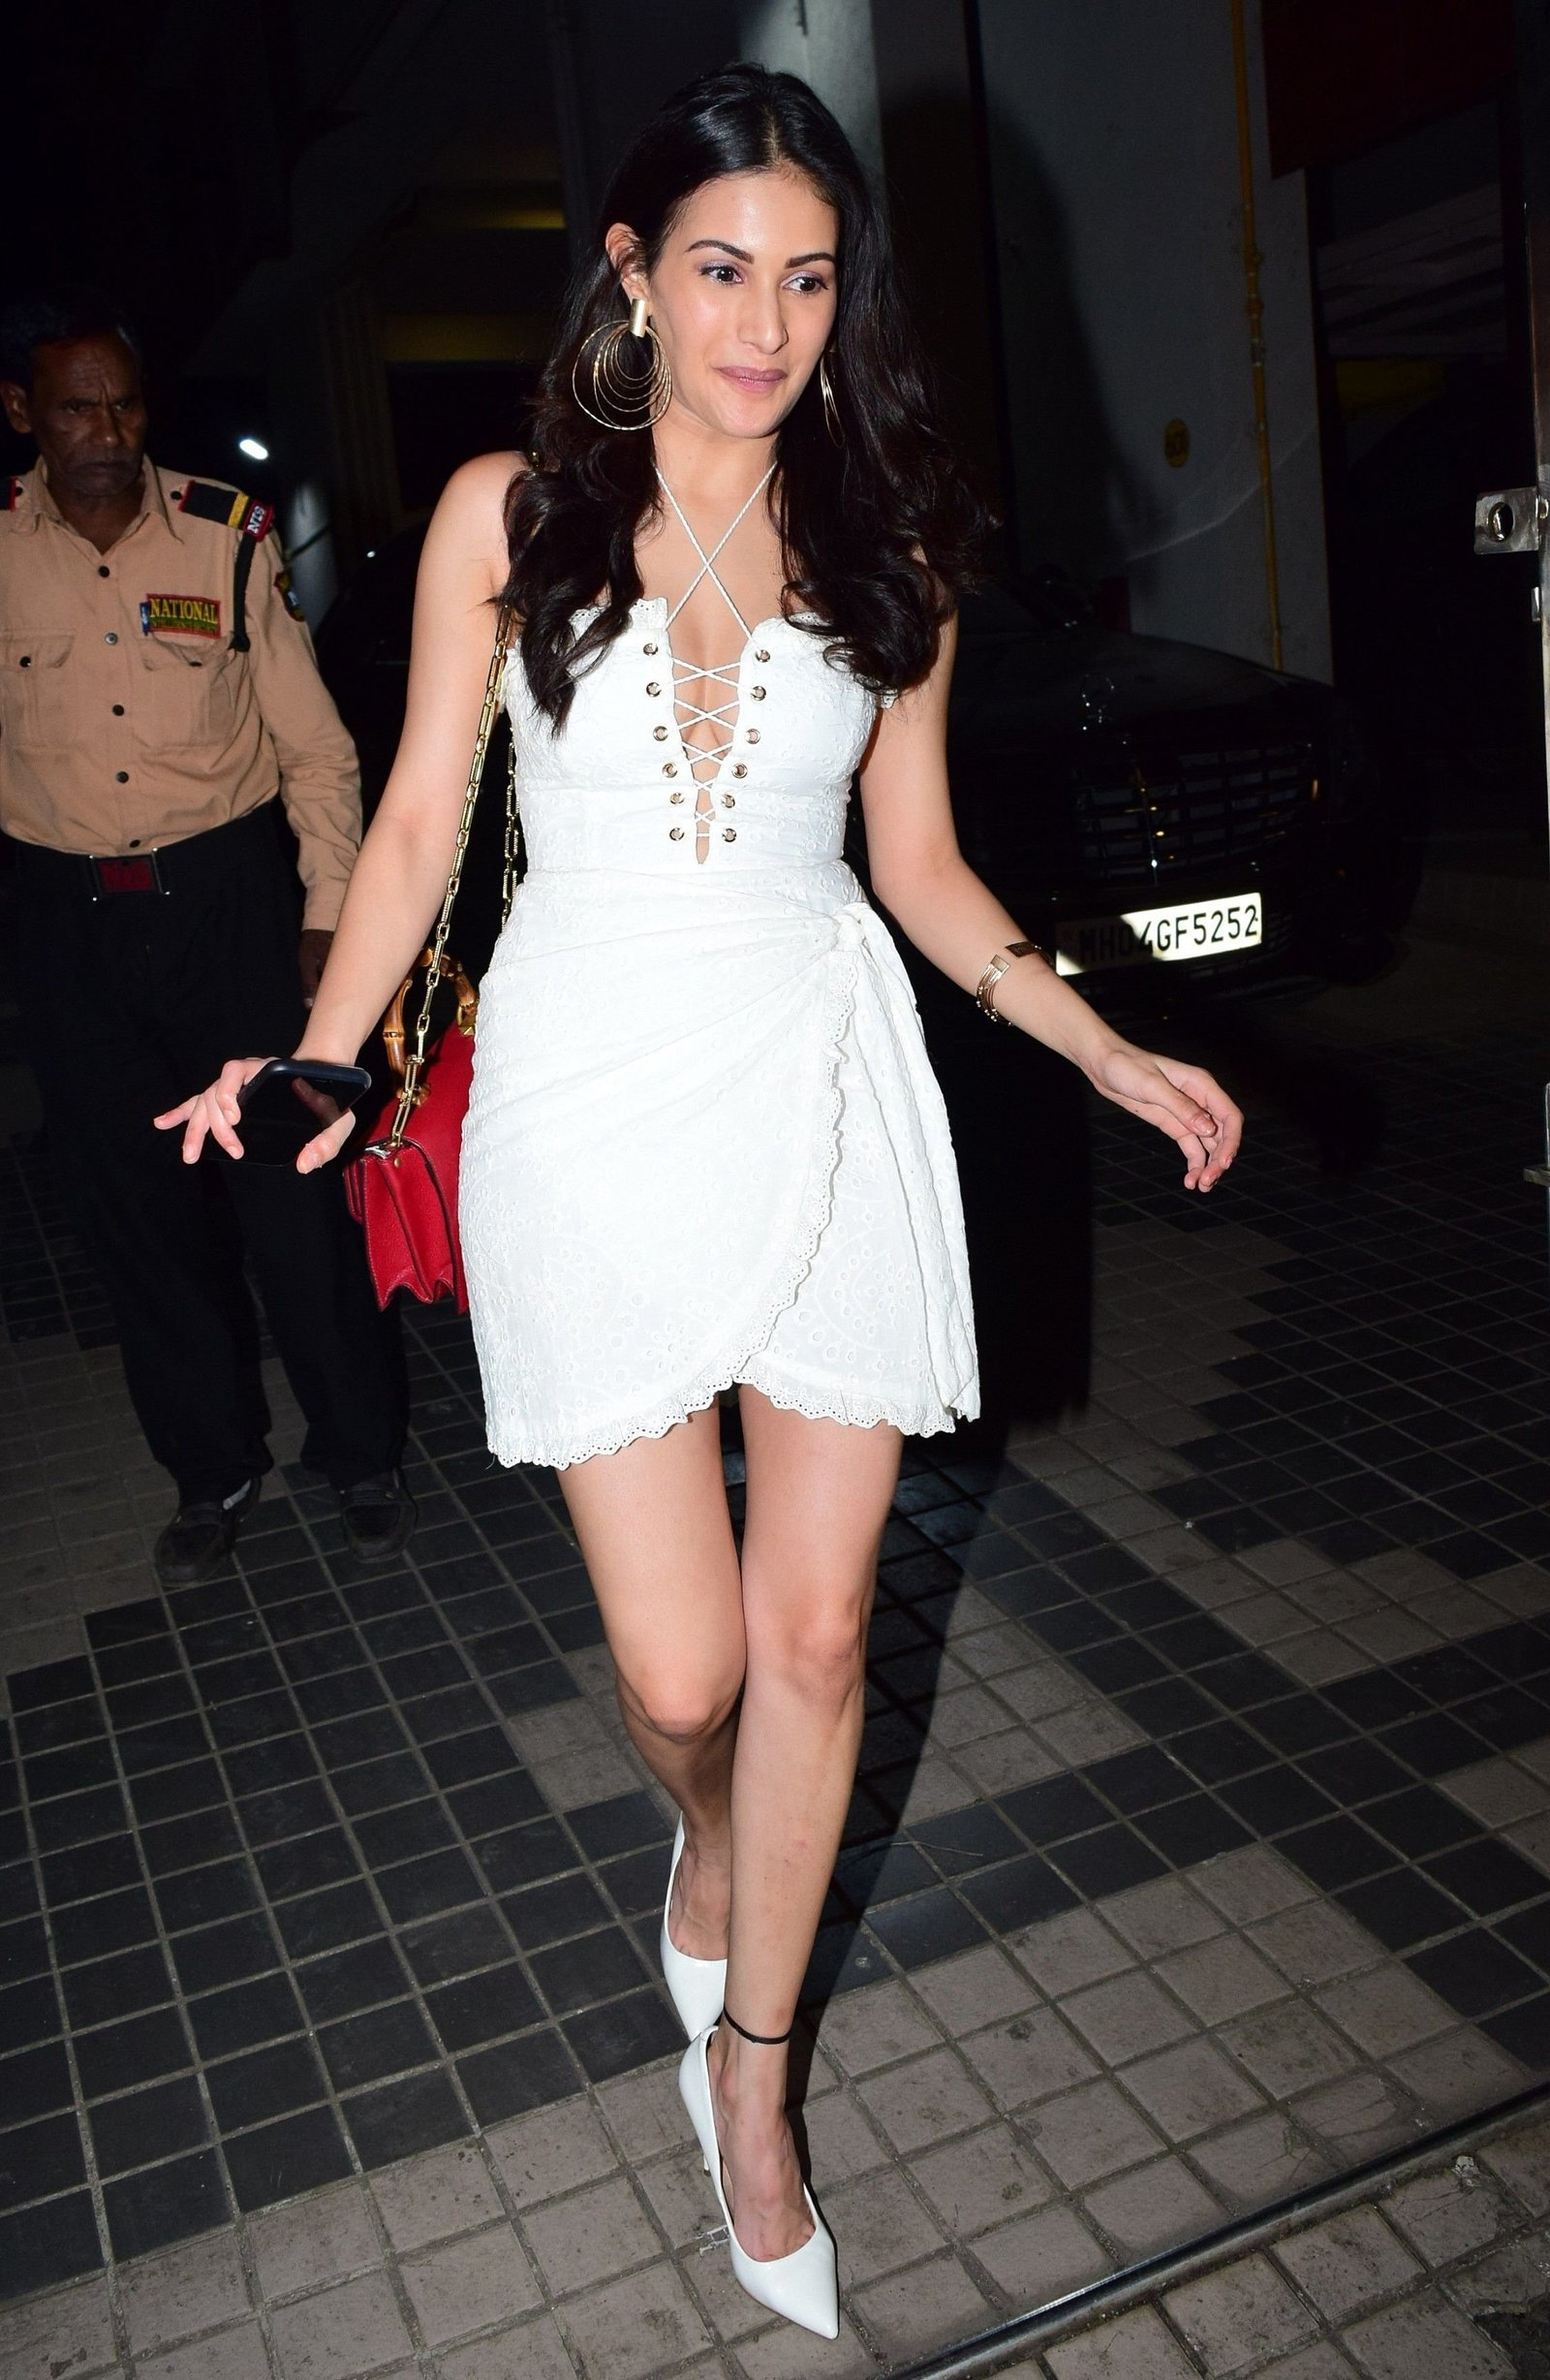 Amyra Dastur - Photos: Celebs At Bunty Sajdeh Party | Picture 1726575